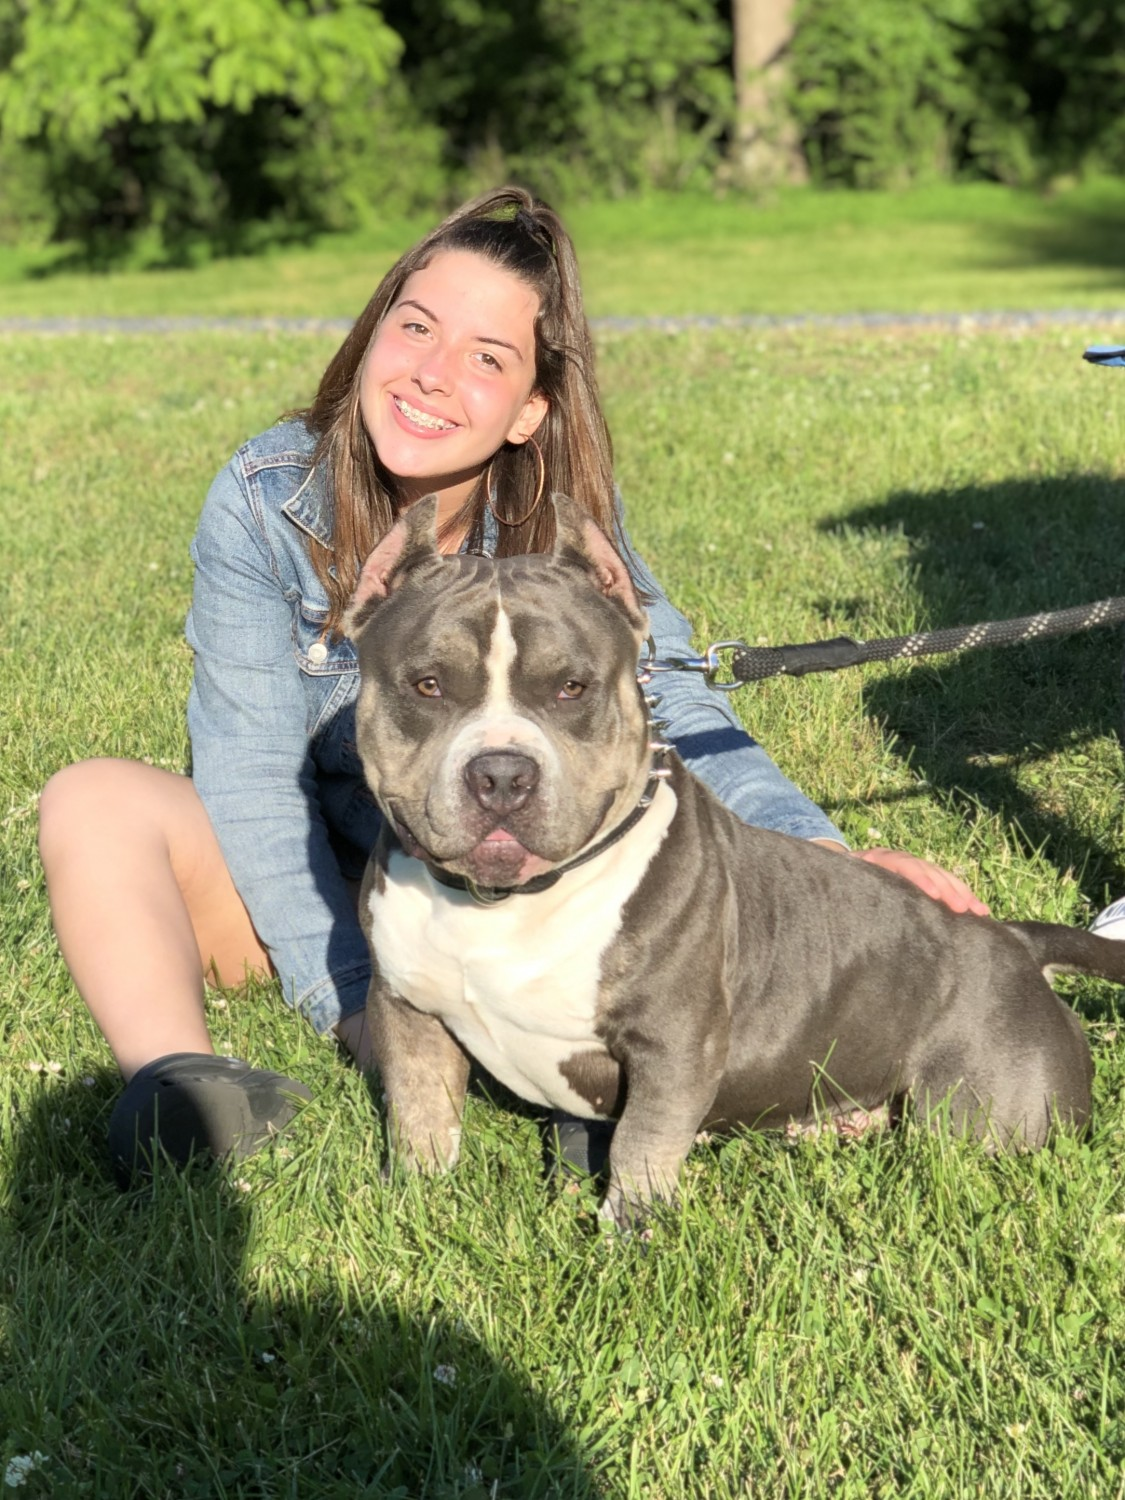 American Bully Puppies For Sale | East Stroudsburg, PA #302272